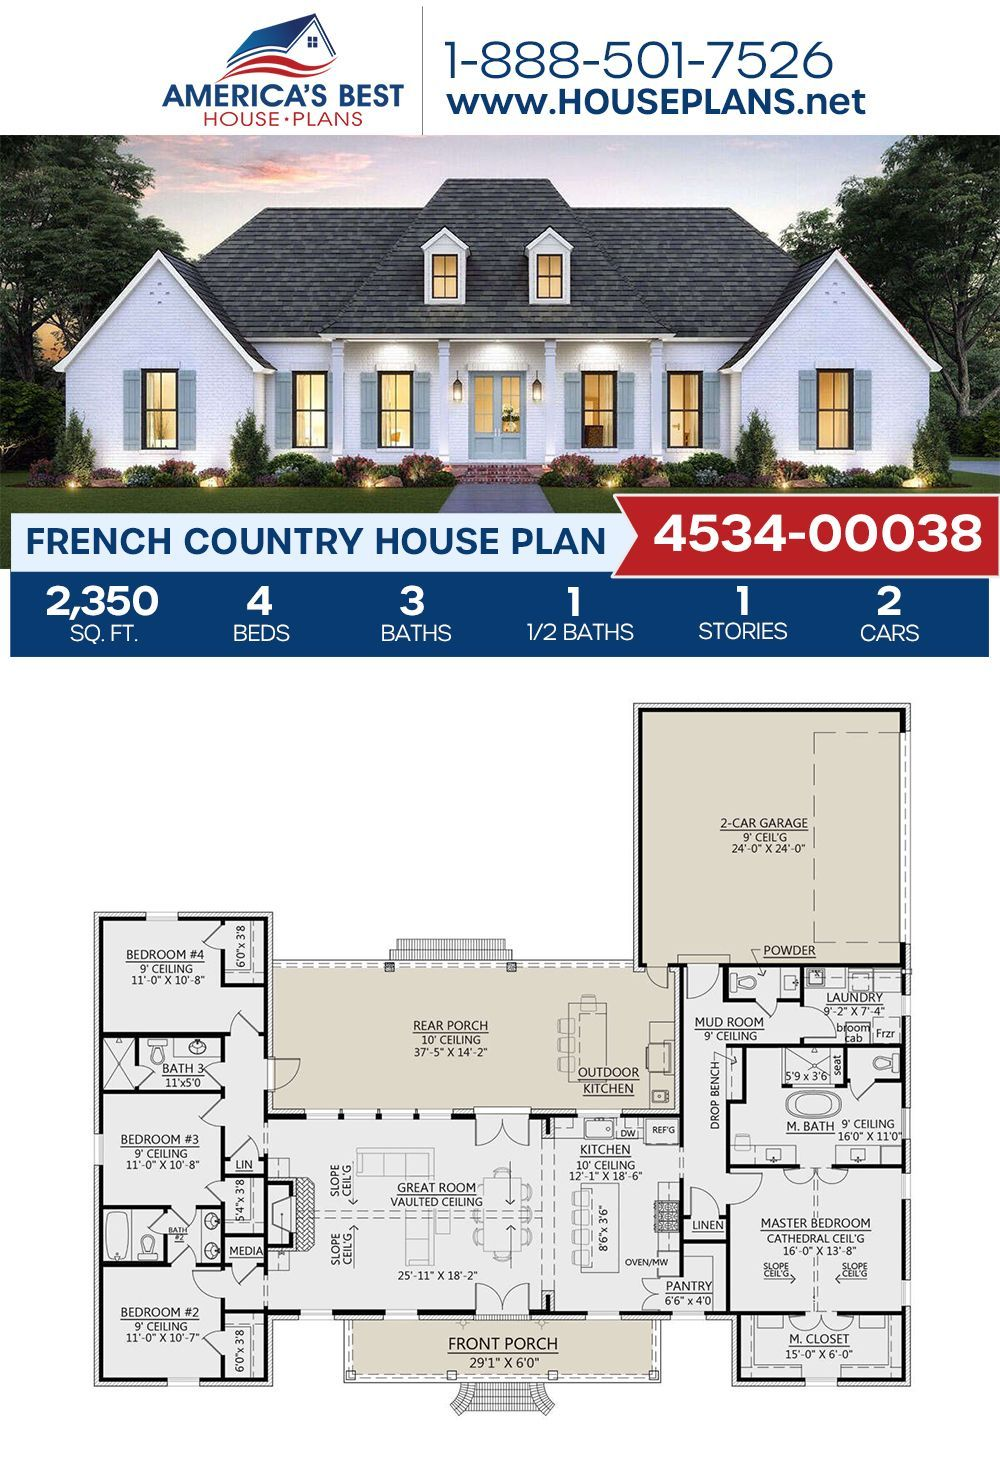 House Plan 4534 00038 French Country Plan 2 350 Square Feet 4 Bedrooms 3 5 Bathrooms In 2020 Affordable House Plans French Country House Plans House Plans Farmhouse